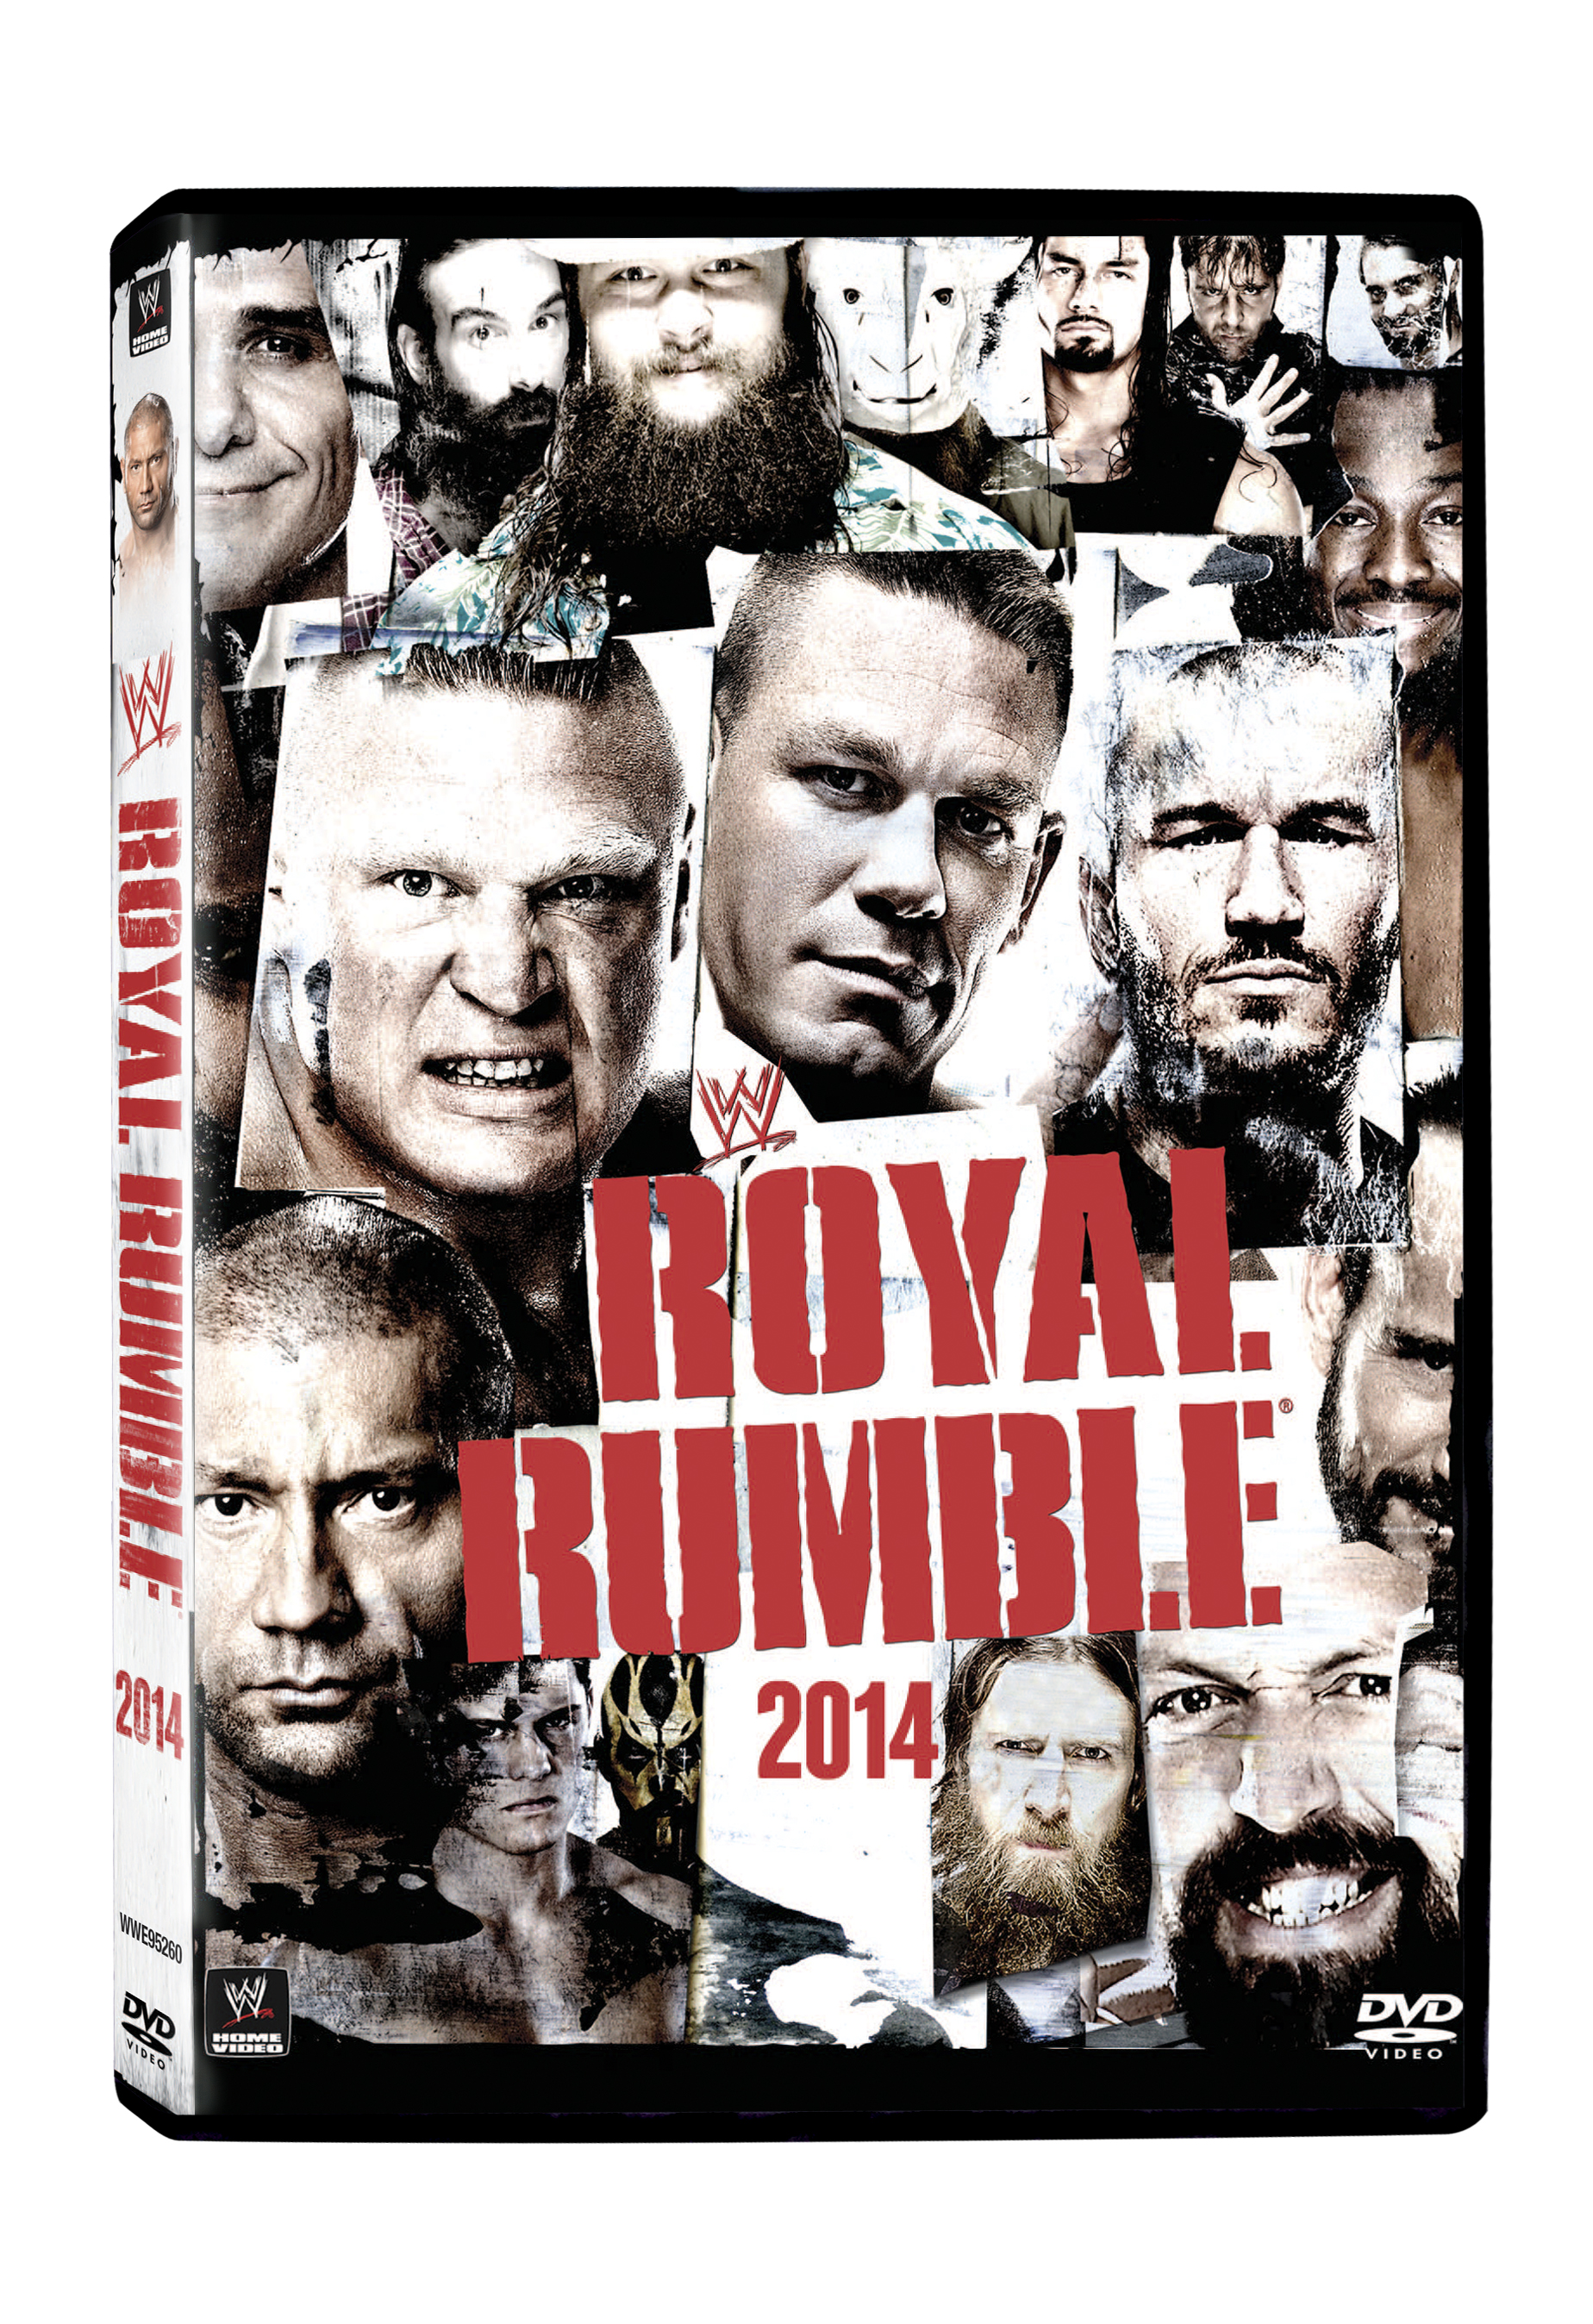 Royal Rumble 2014 - WWE - Cinedigm Entertainment